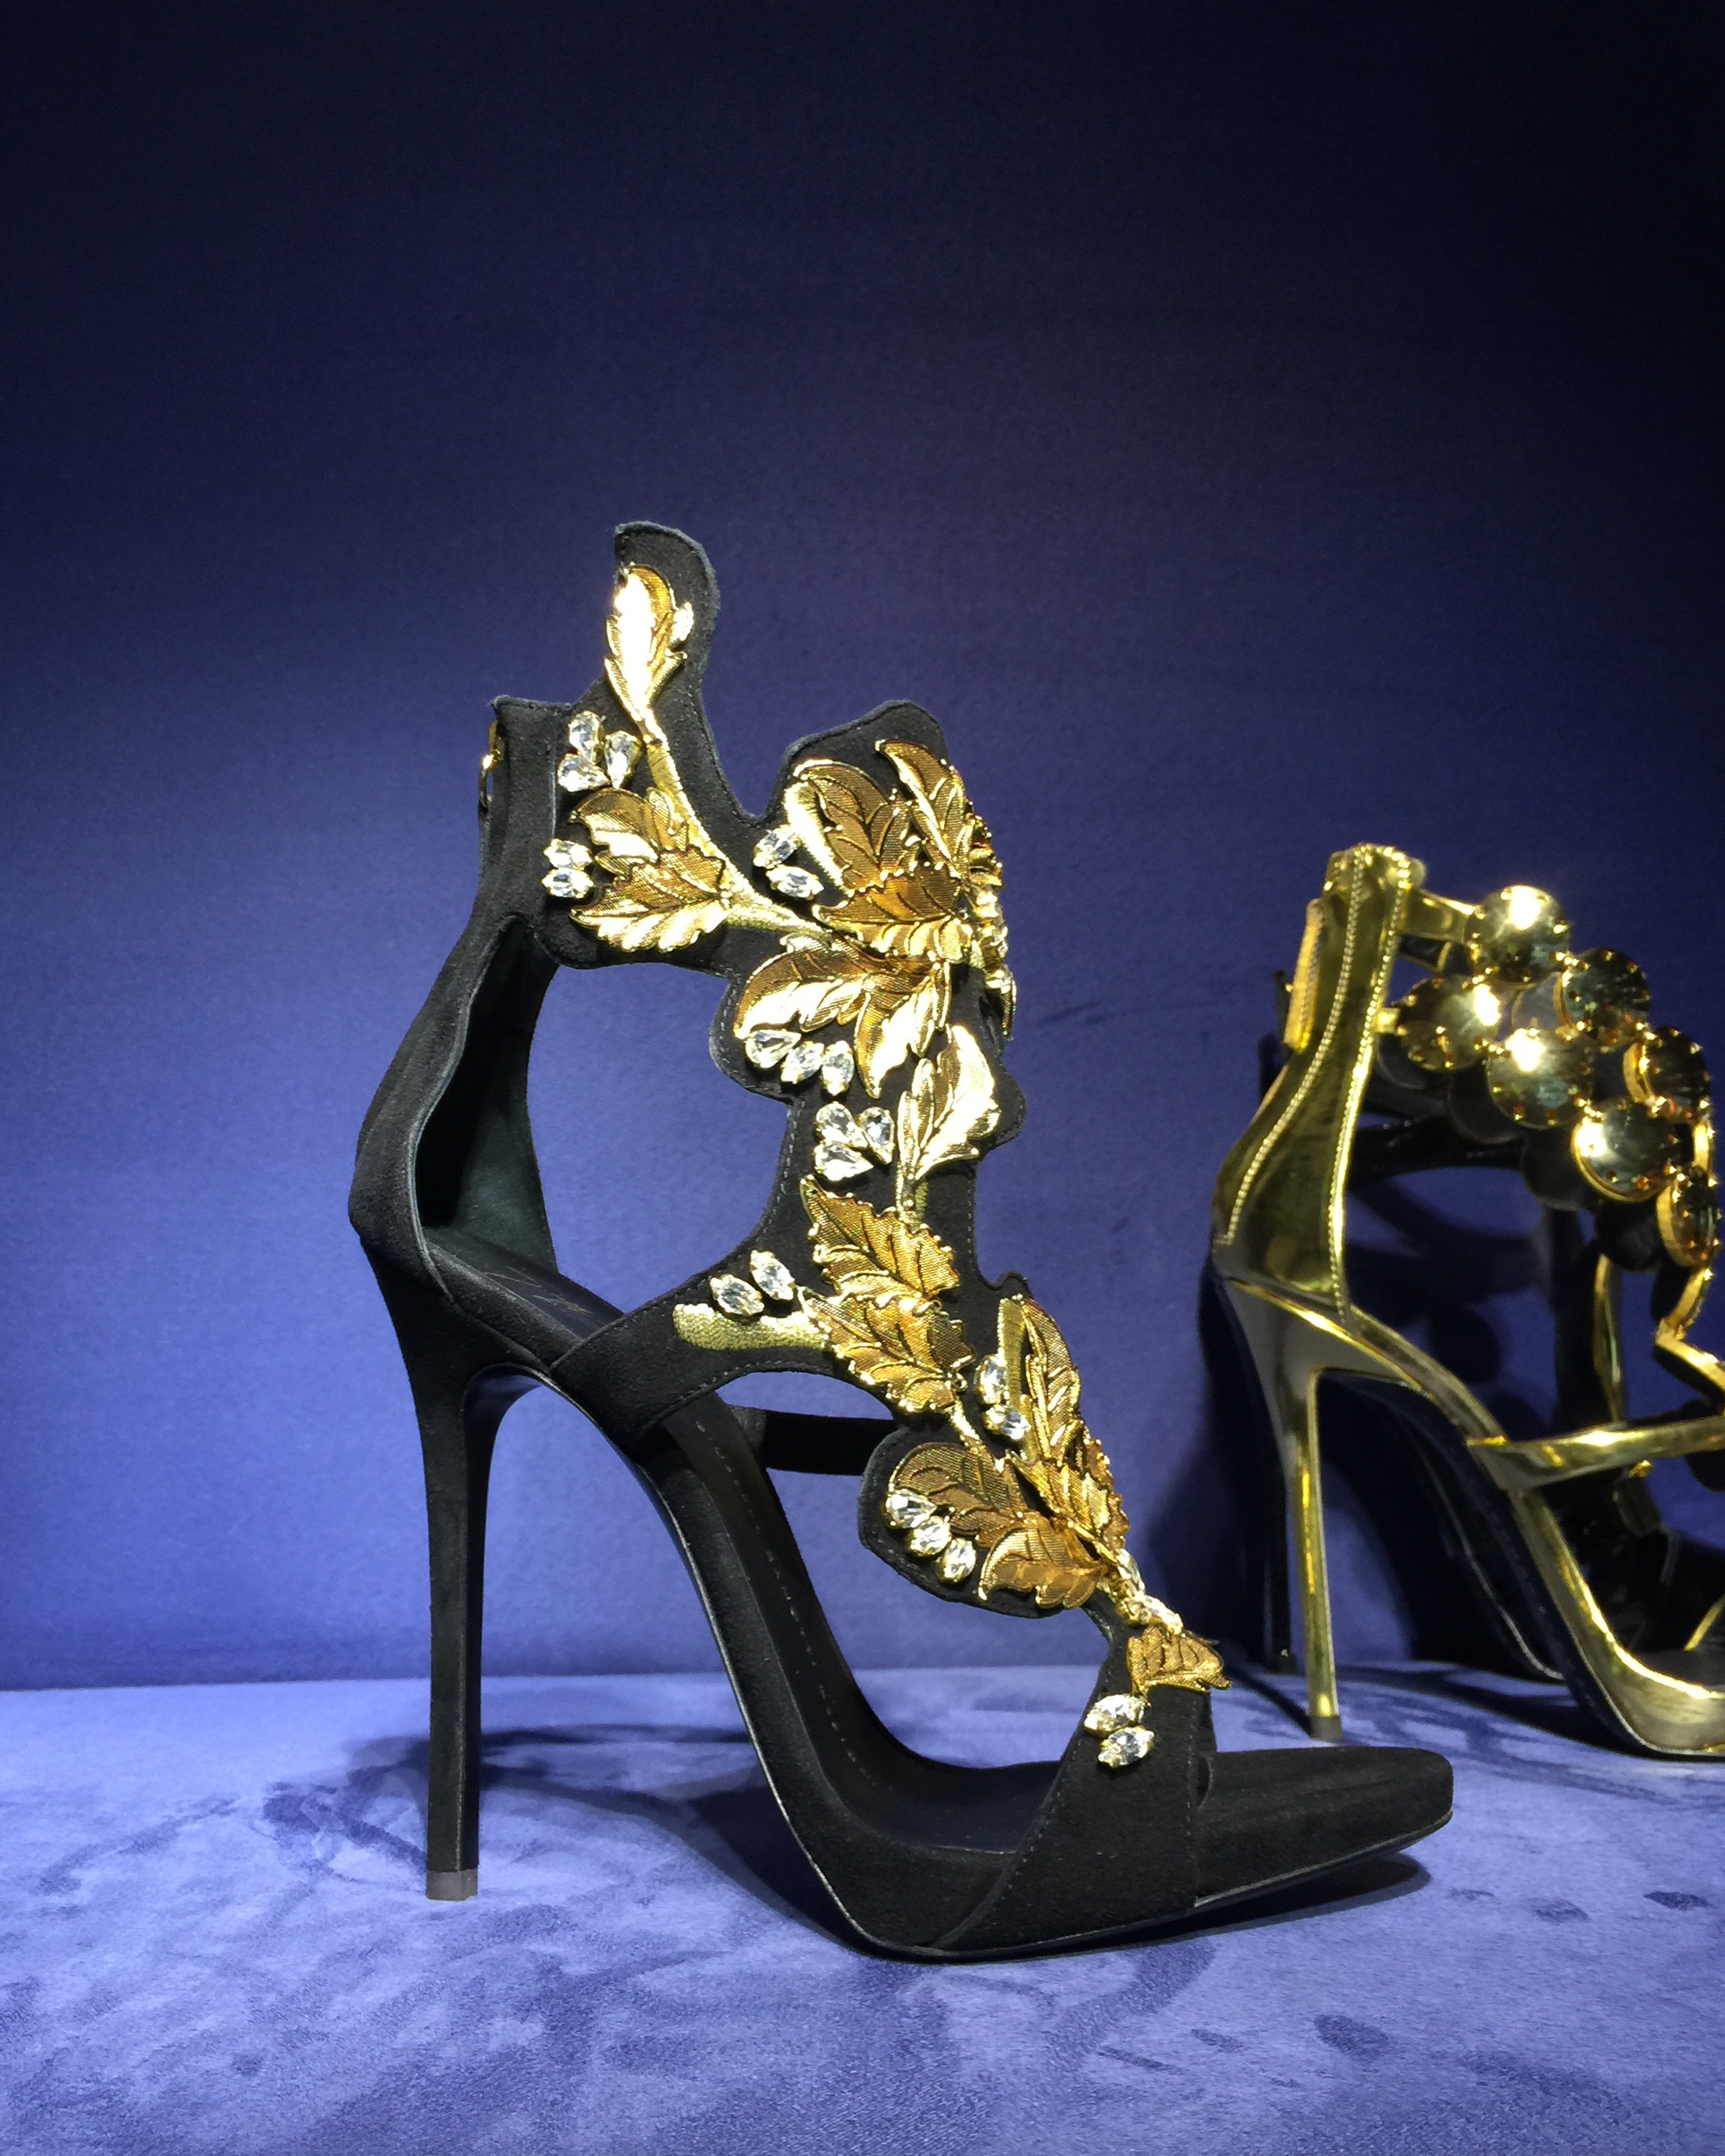 Giuseppe Zanotti's at Selfridge's shoe galleries.  I can die happy now after that visit.